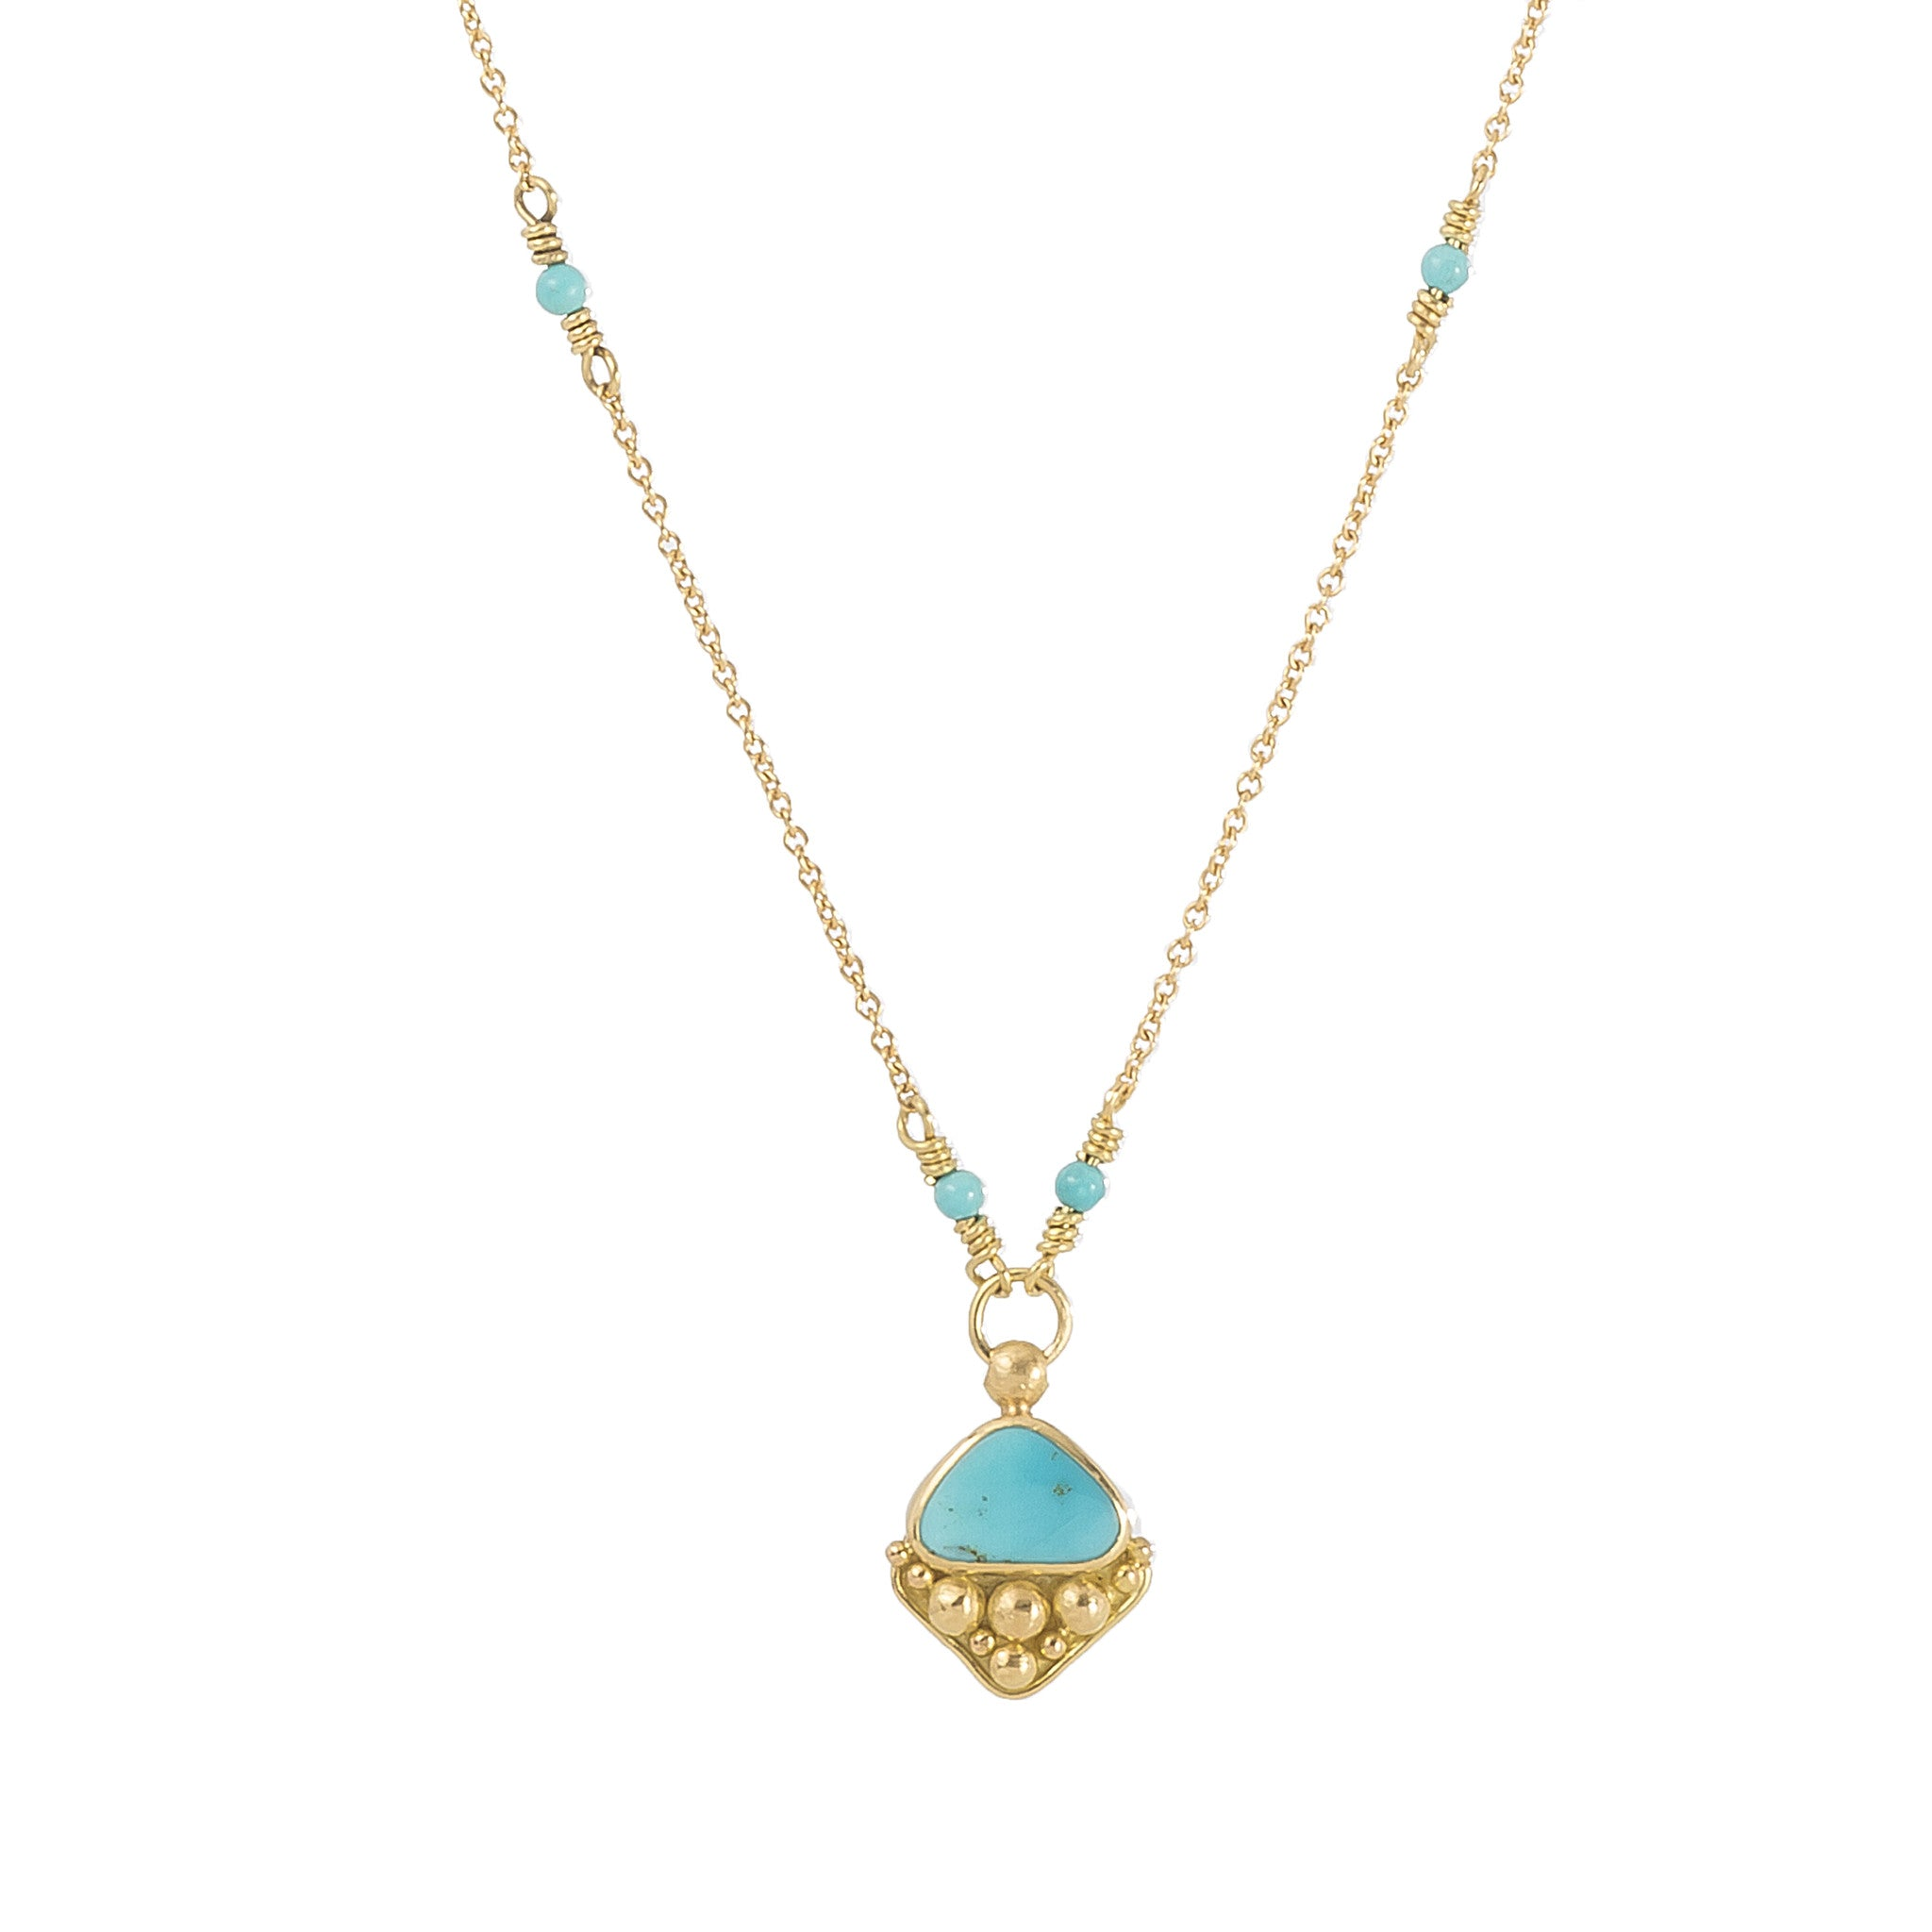 Granulated Turquoise Necklace